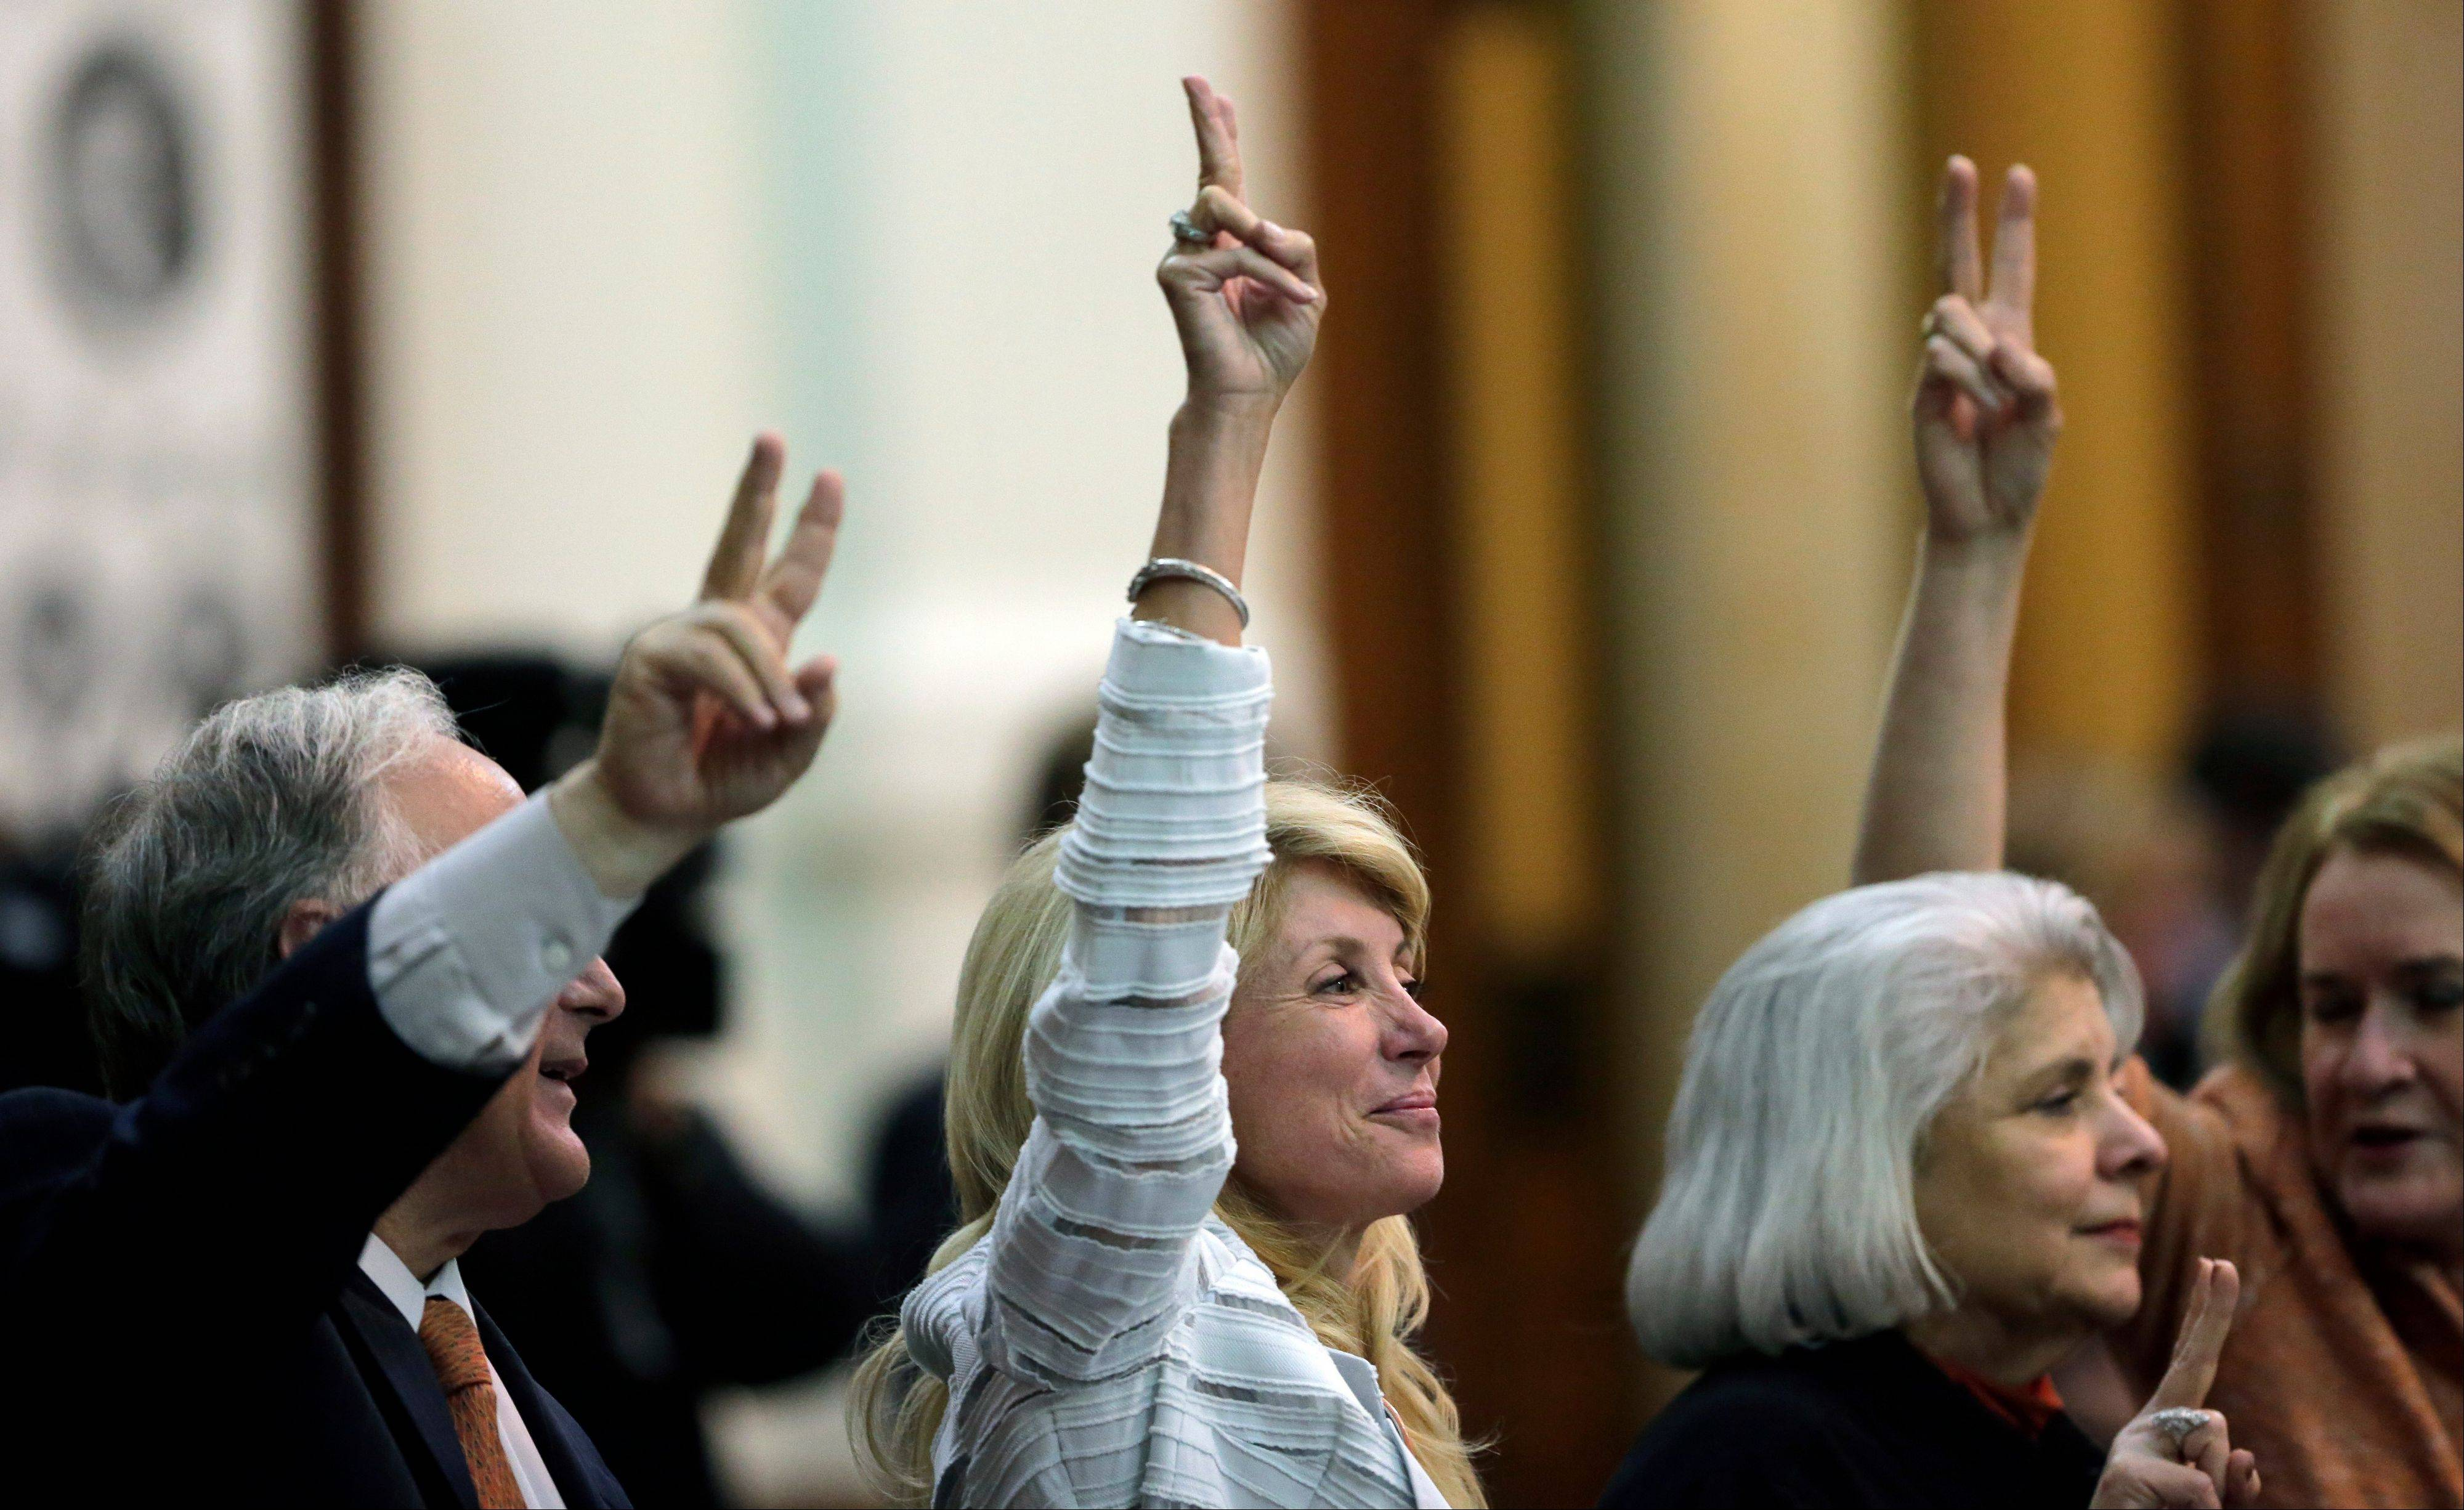 Sen. Wendy Davis, a Democrat from Fort Worth, center, holds up two fingers late Tuesday to signal a �No� vote as the session where they tried to filibuster an abortion bill draws to a close.